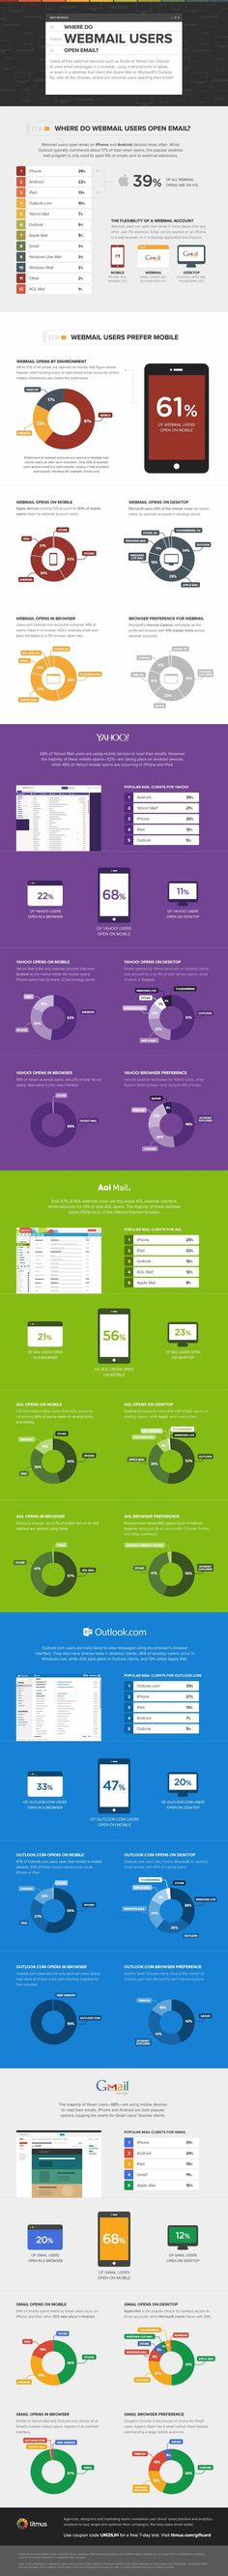 Why Should Your Emails Become More Mobile Friendly?